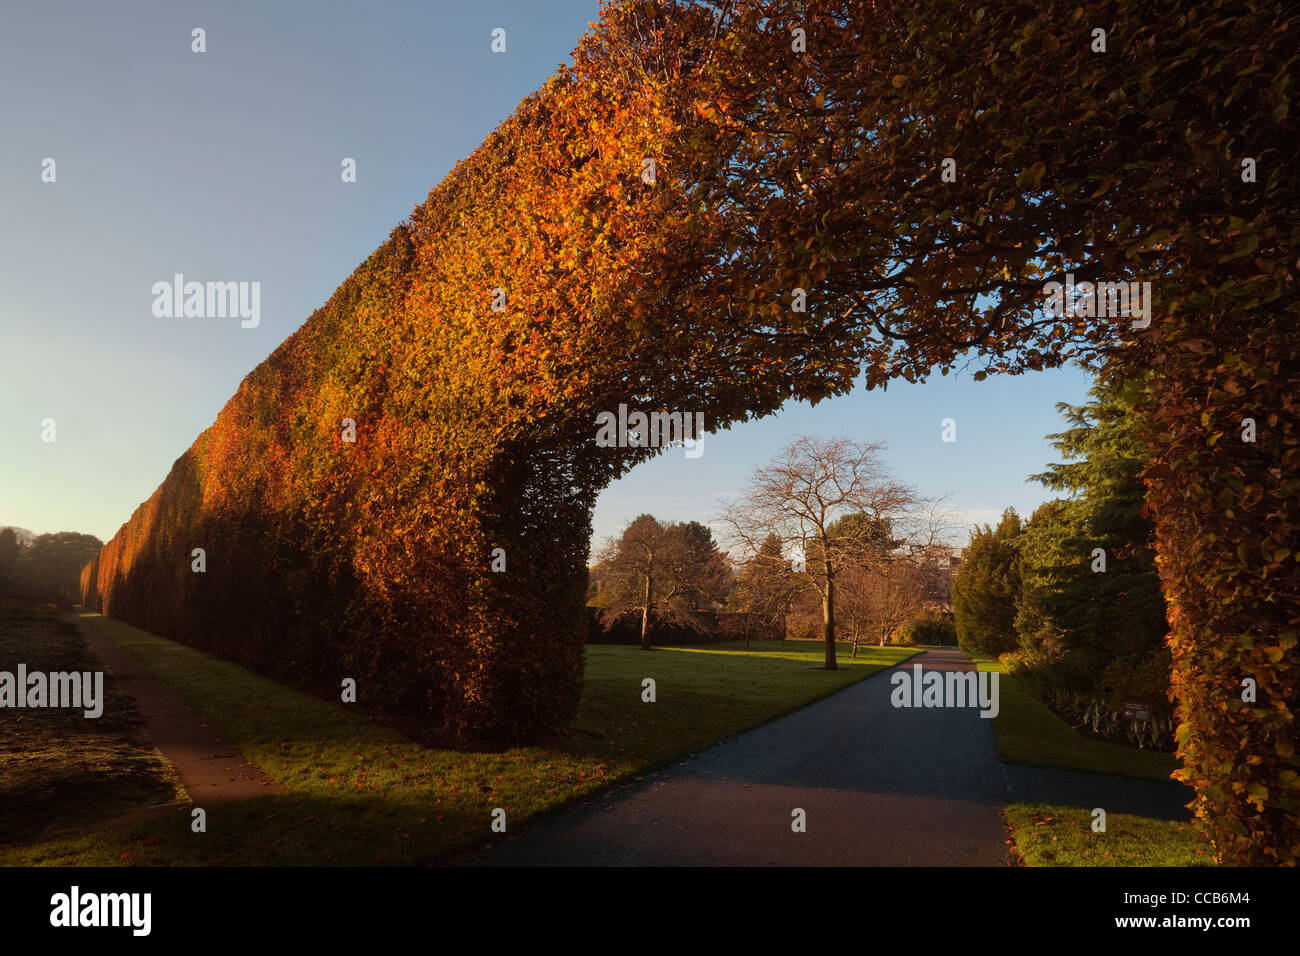 Beech Hedge, Royal Botanic Garden, Edinburgh - Stock Image